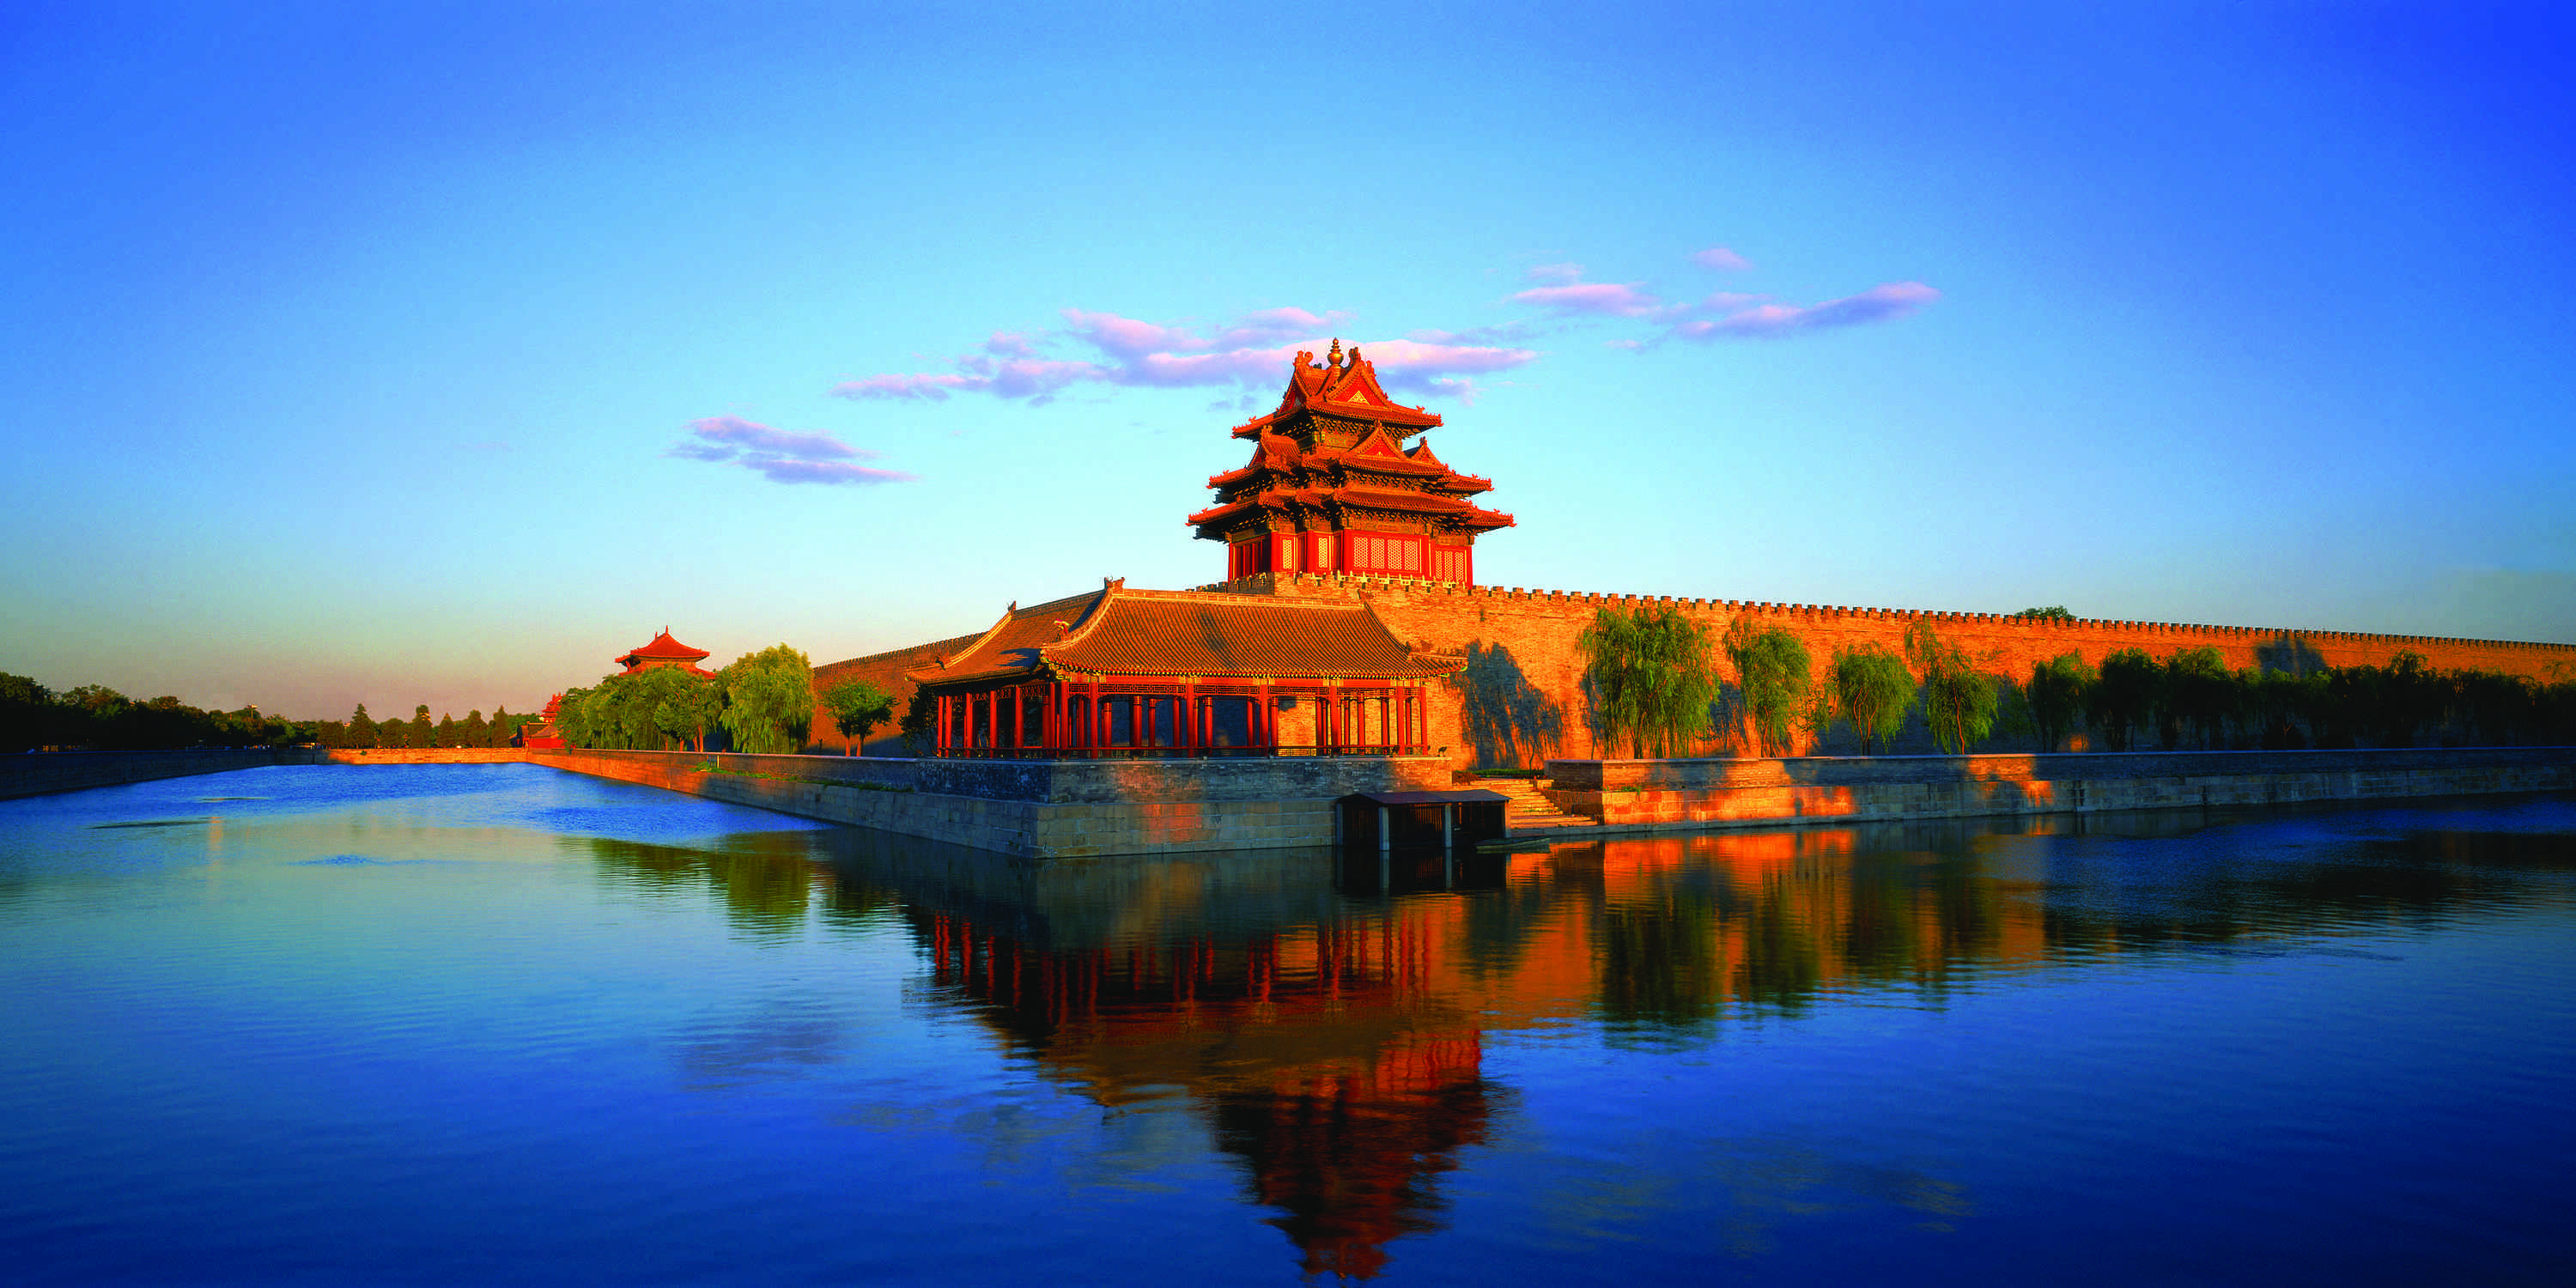 10 Things I Learned From My Recent Trip to Beijing China